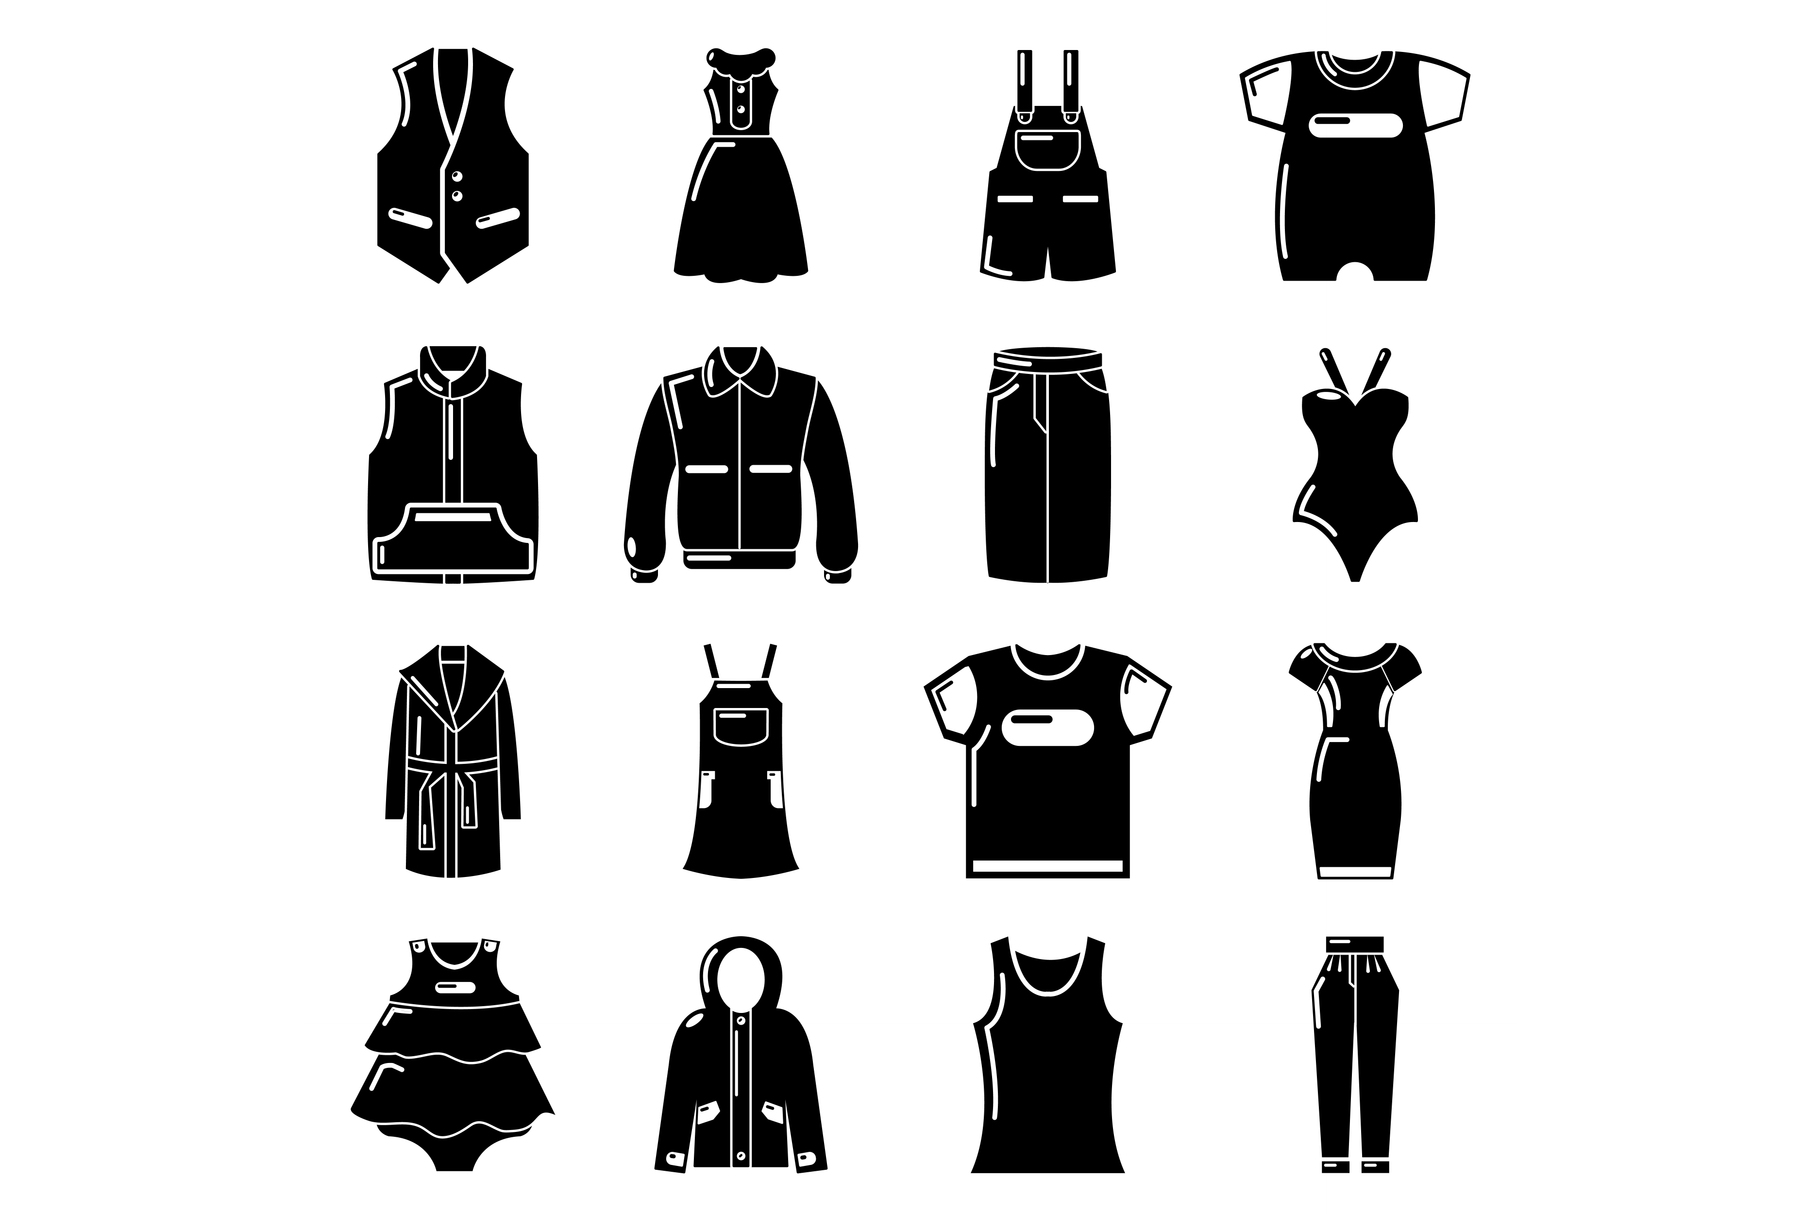 Fashion clothes wear icons set, simple style example image 1